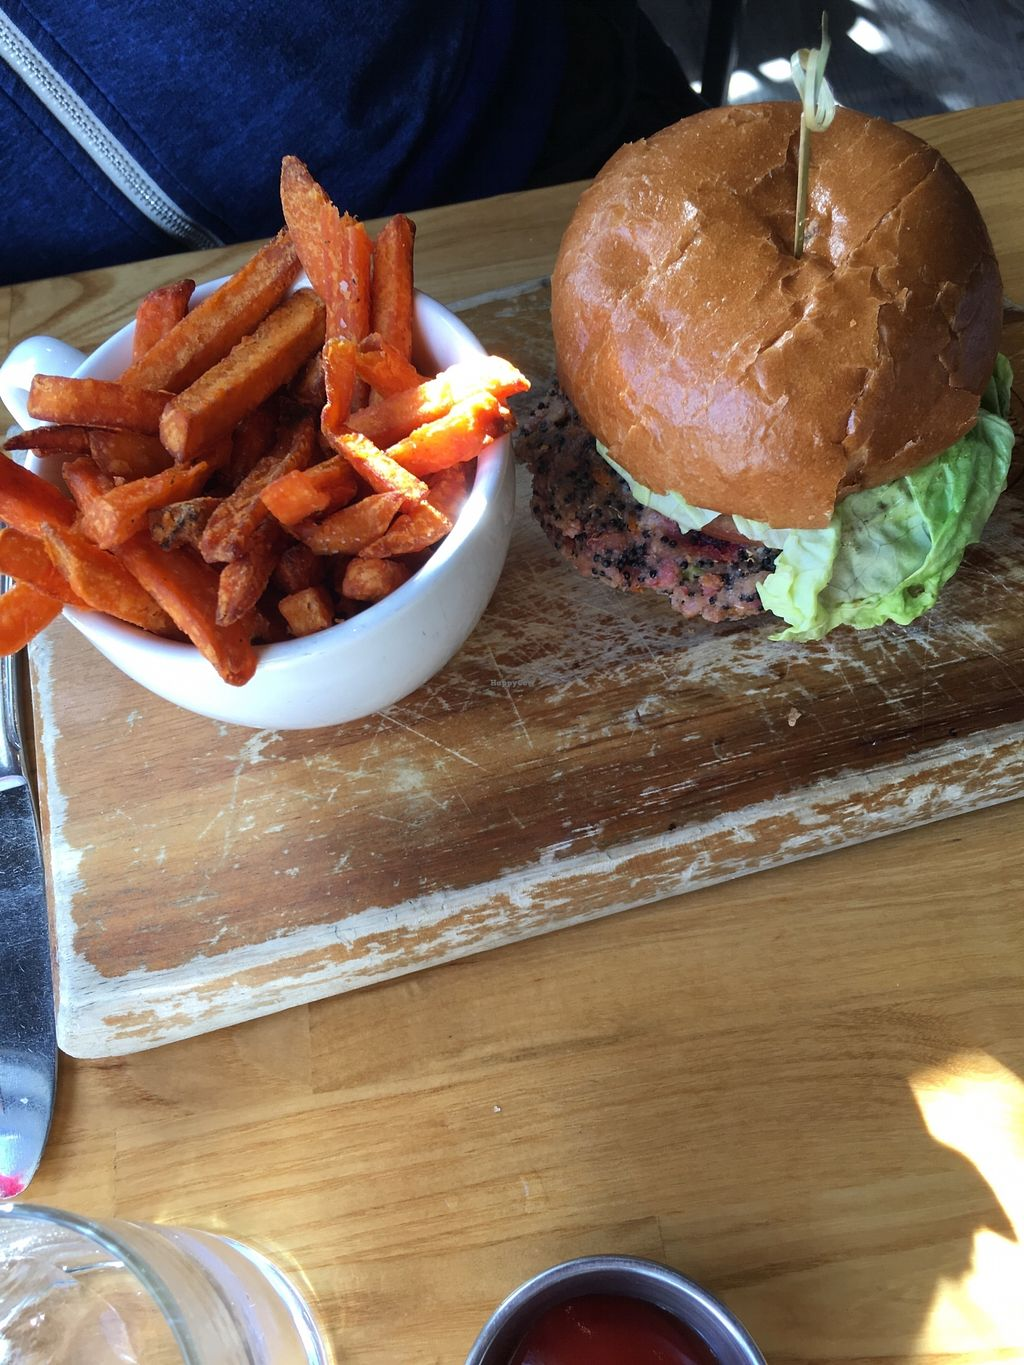 """Photo of Clearwater Restaurant  by <a href=""""/members/profile/theron"""">theron</a> <br/>Veggie burger - for vegan order without cheese and different bread <br/> February 19, 2018  - <a href='/contact/abuse/image/112567/361448'>Report</a>"""